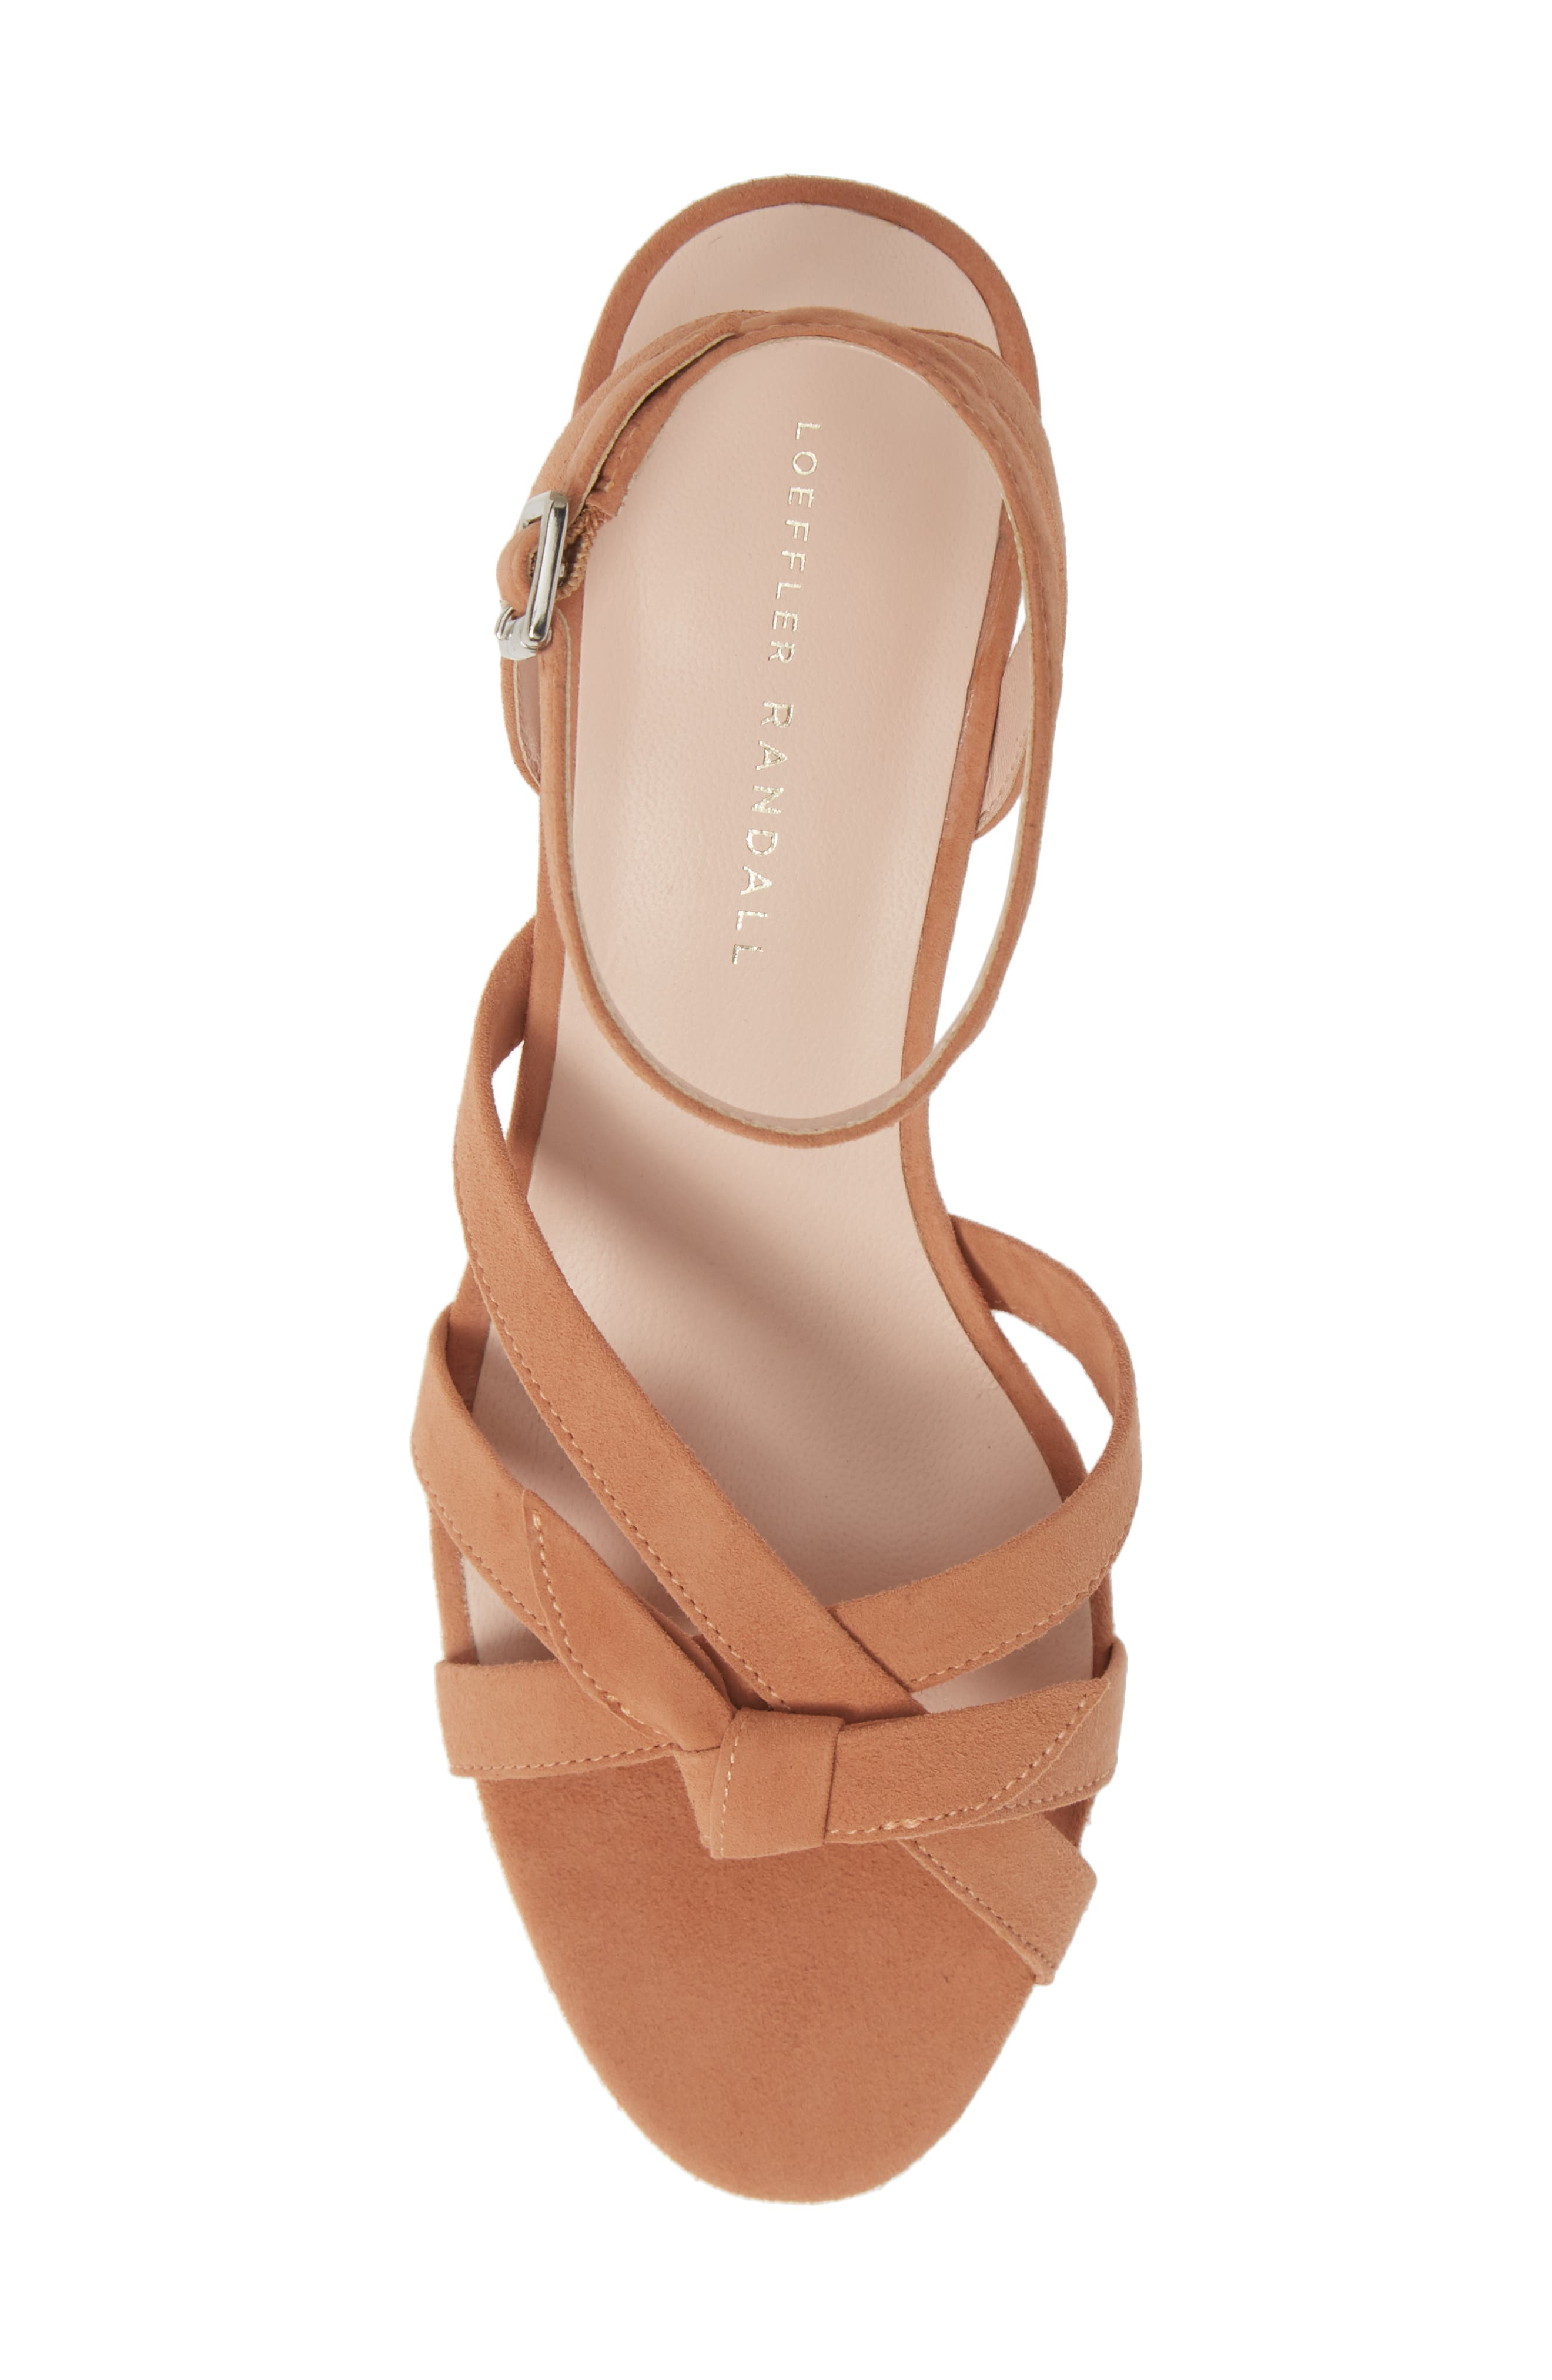 LOEFFLER RANDALL, Anny Knotted Sandal, Alternate thumbnail 5, color, COQUILLE